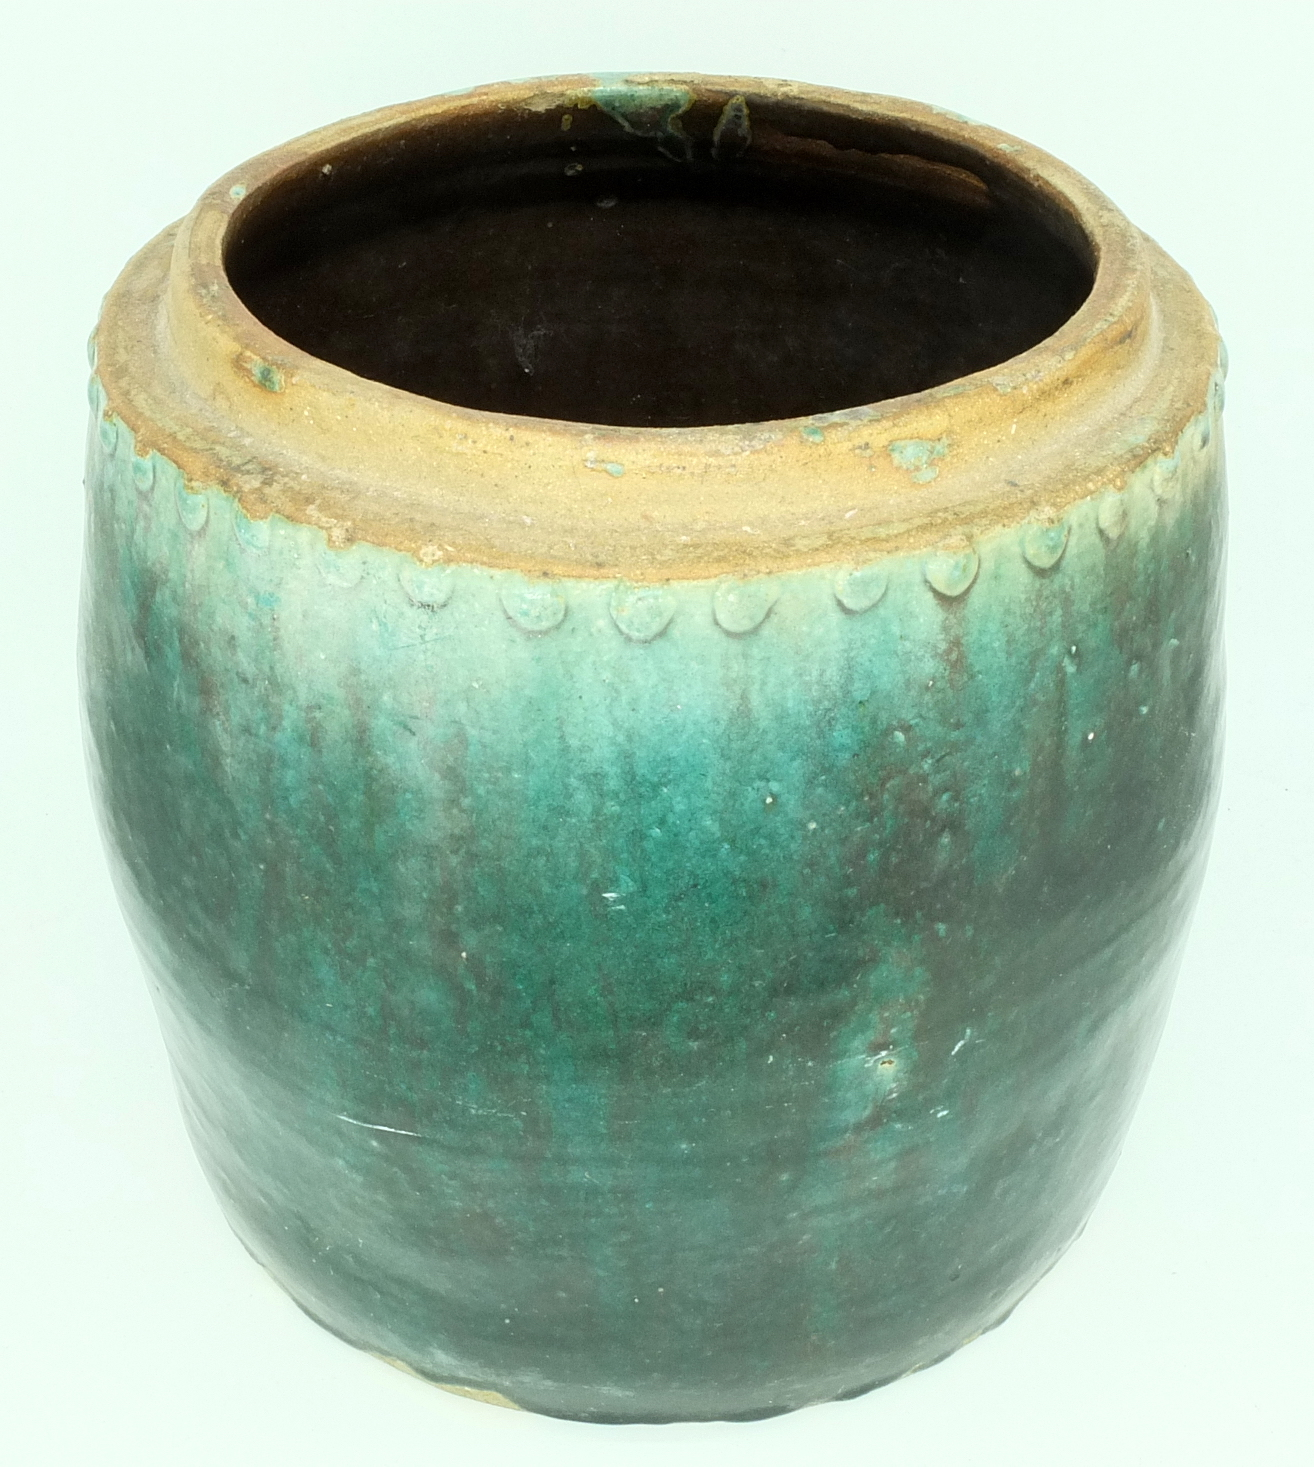 'Asian Green Glazed Stoneware Jar Without Cover'